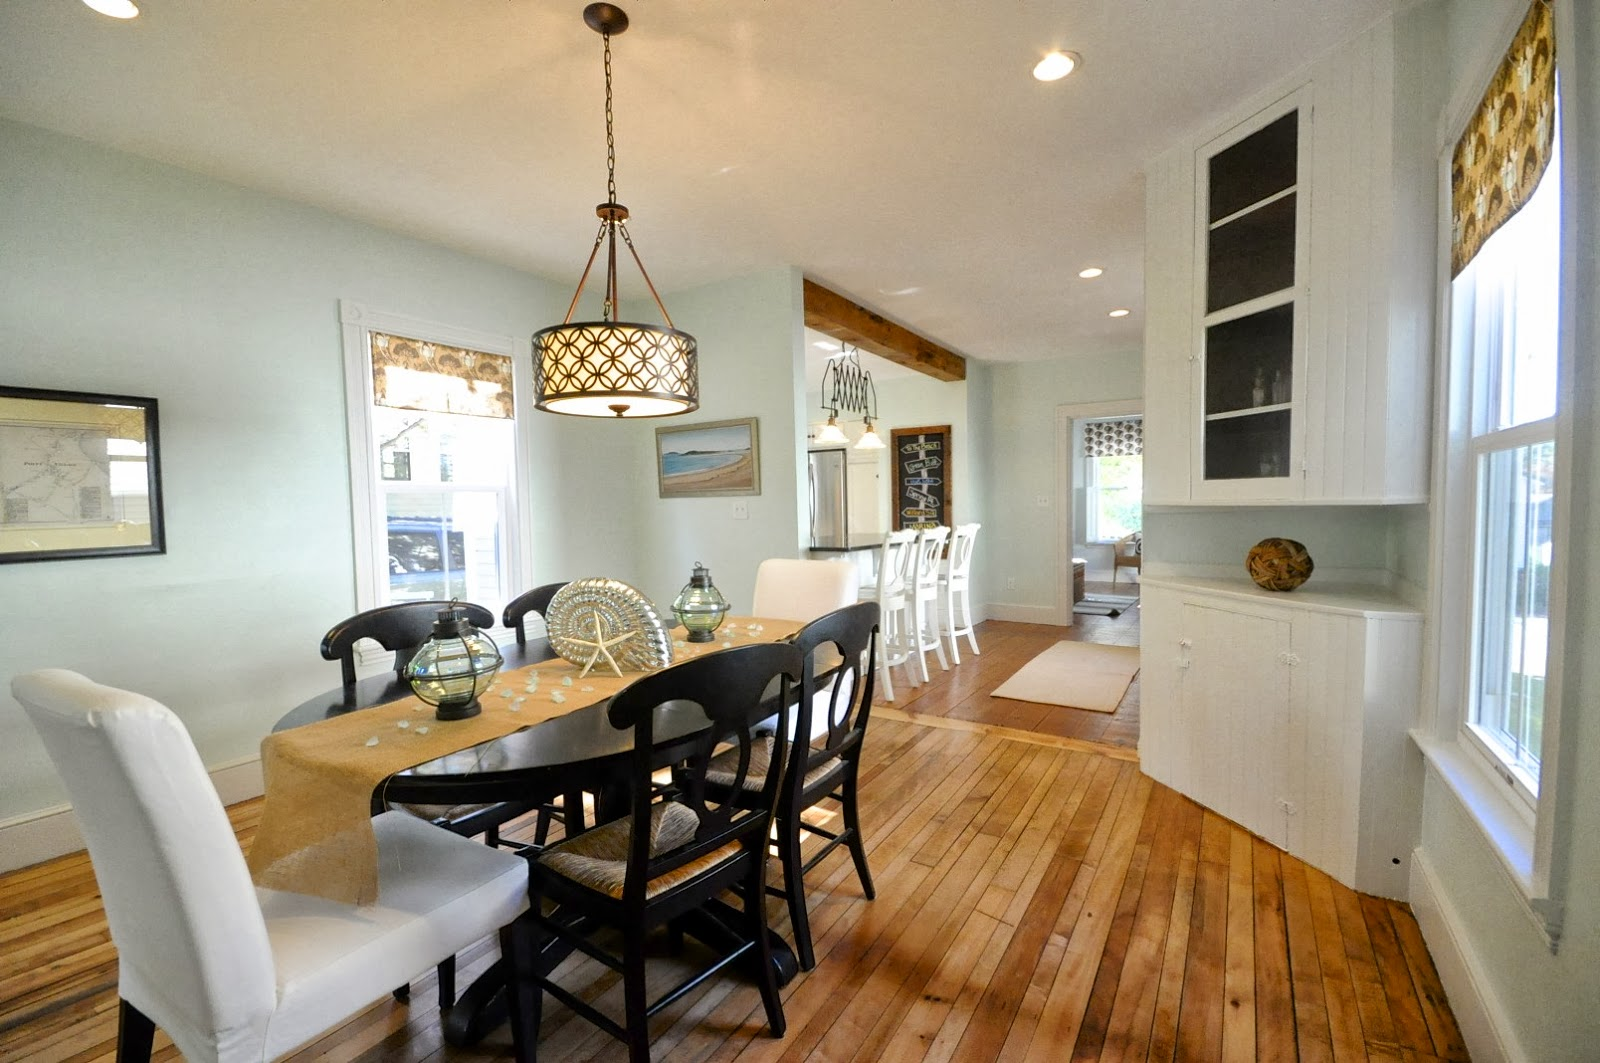 Kitchen Dining Room Remodel Remodelaholic Creating An Open Kitchen And Dining Room